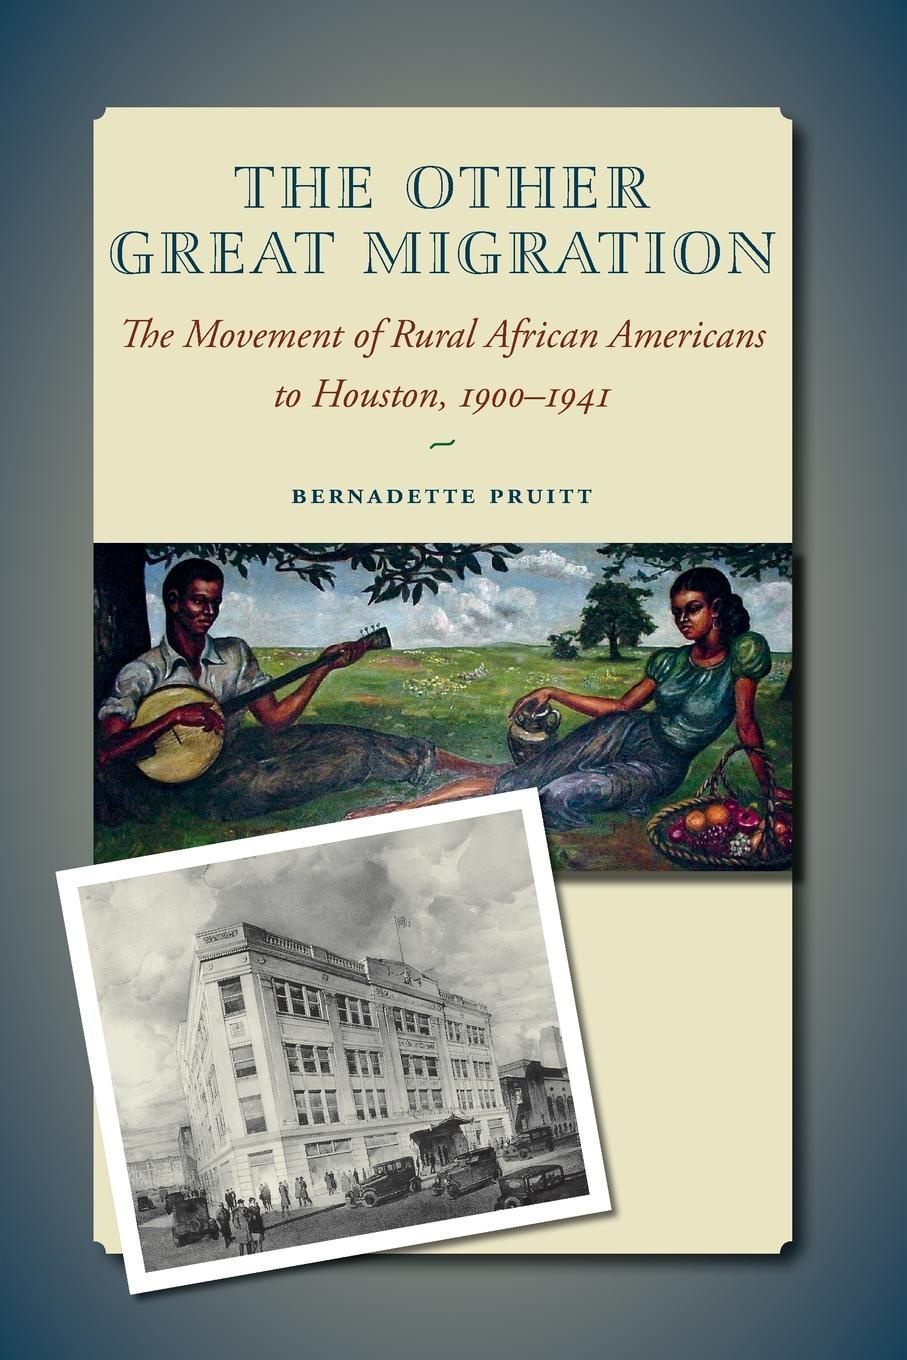 Bernadette Pruitt The Other Great Migration. The Movement of Rural African Americans to Houston, 1900-1941